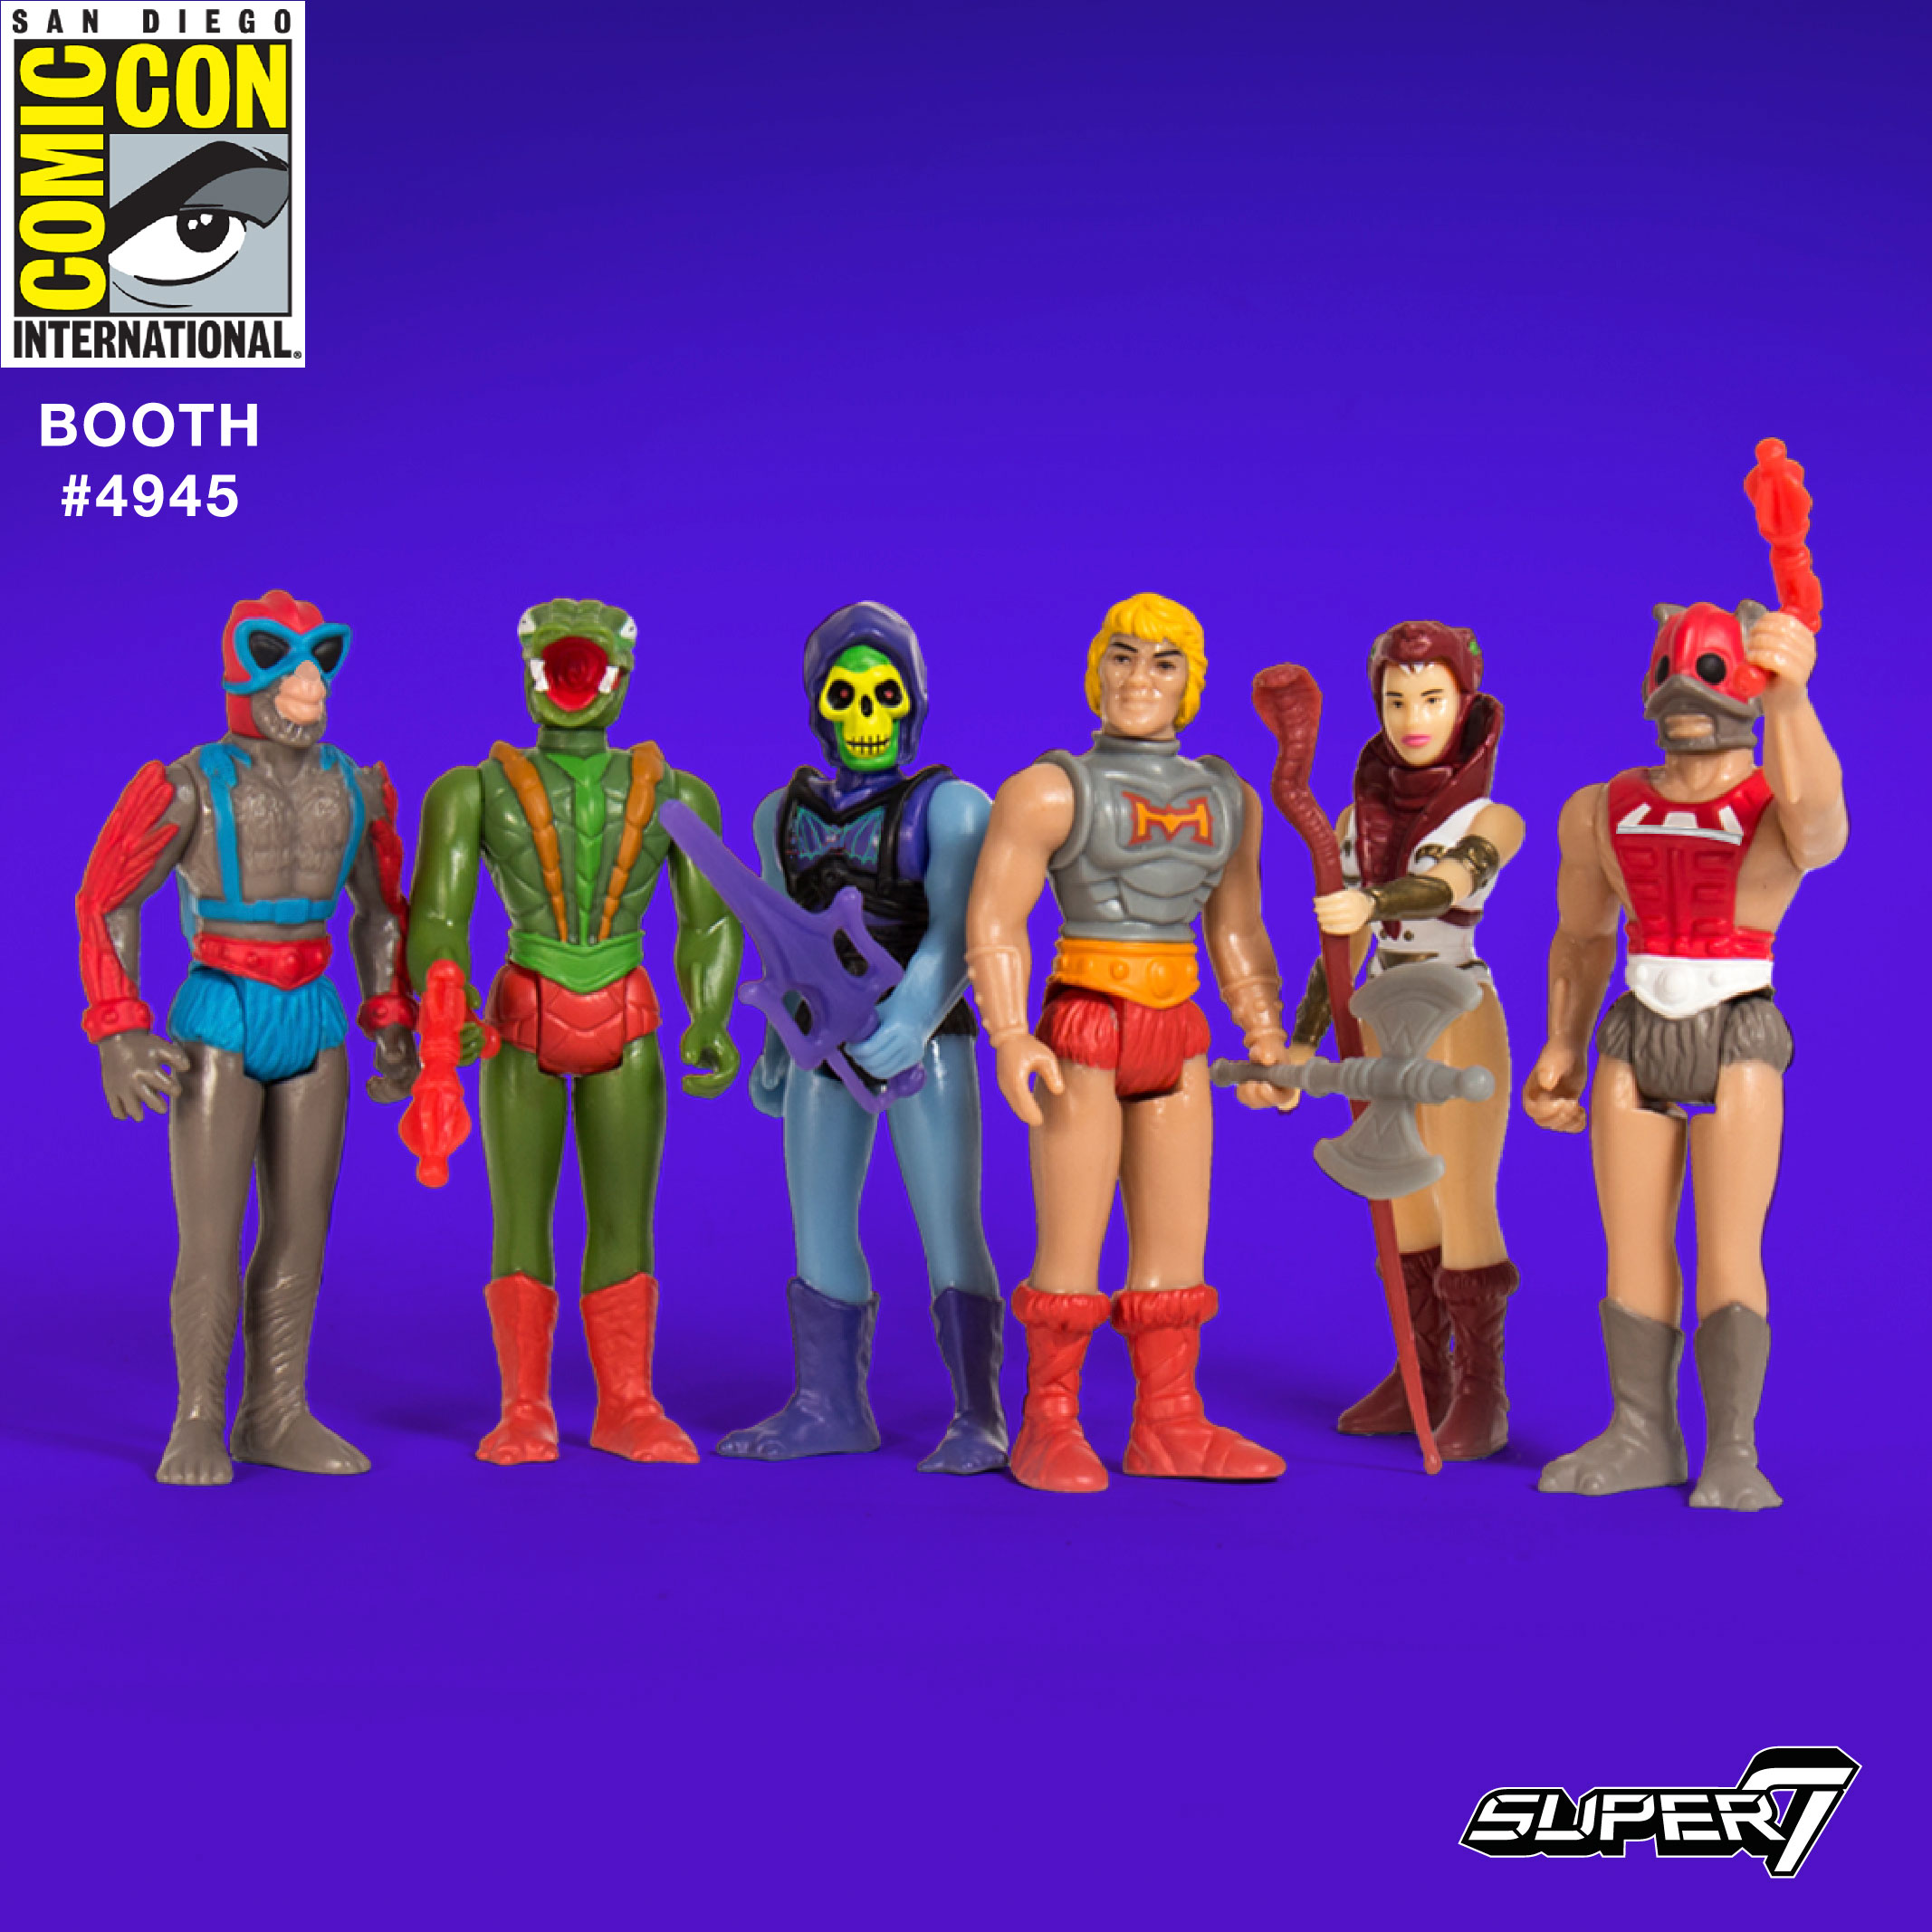 super7-motu-sdcc-comic-con-2017-exclusive-2